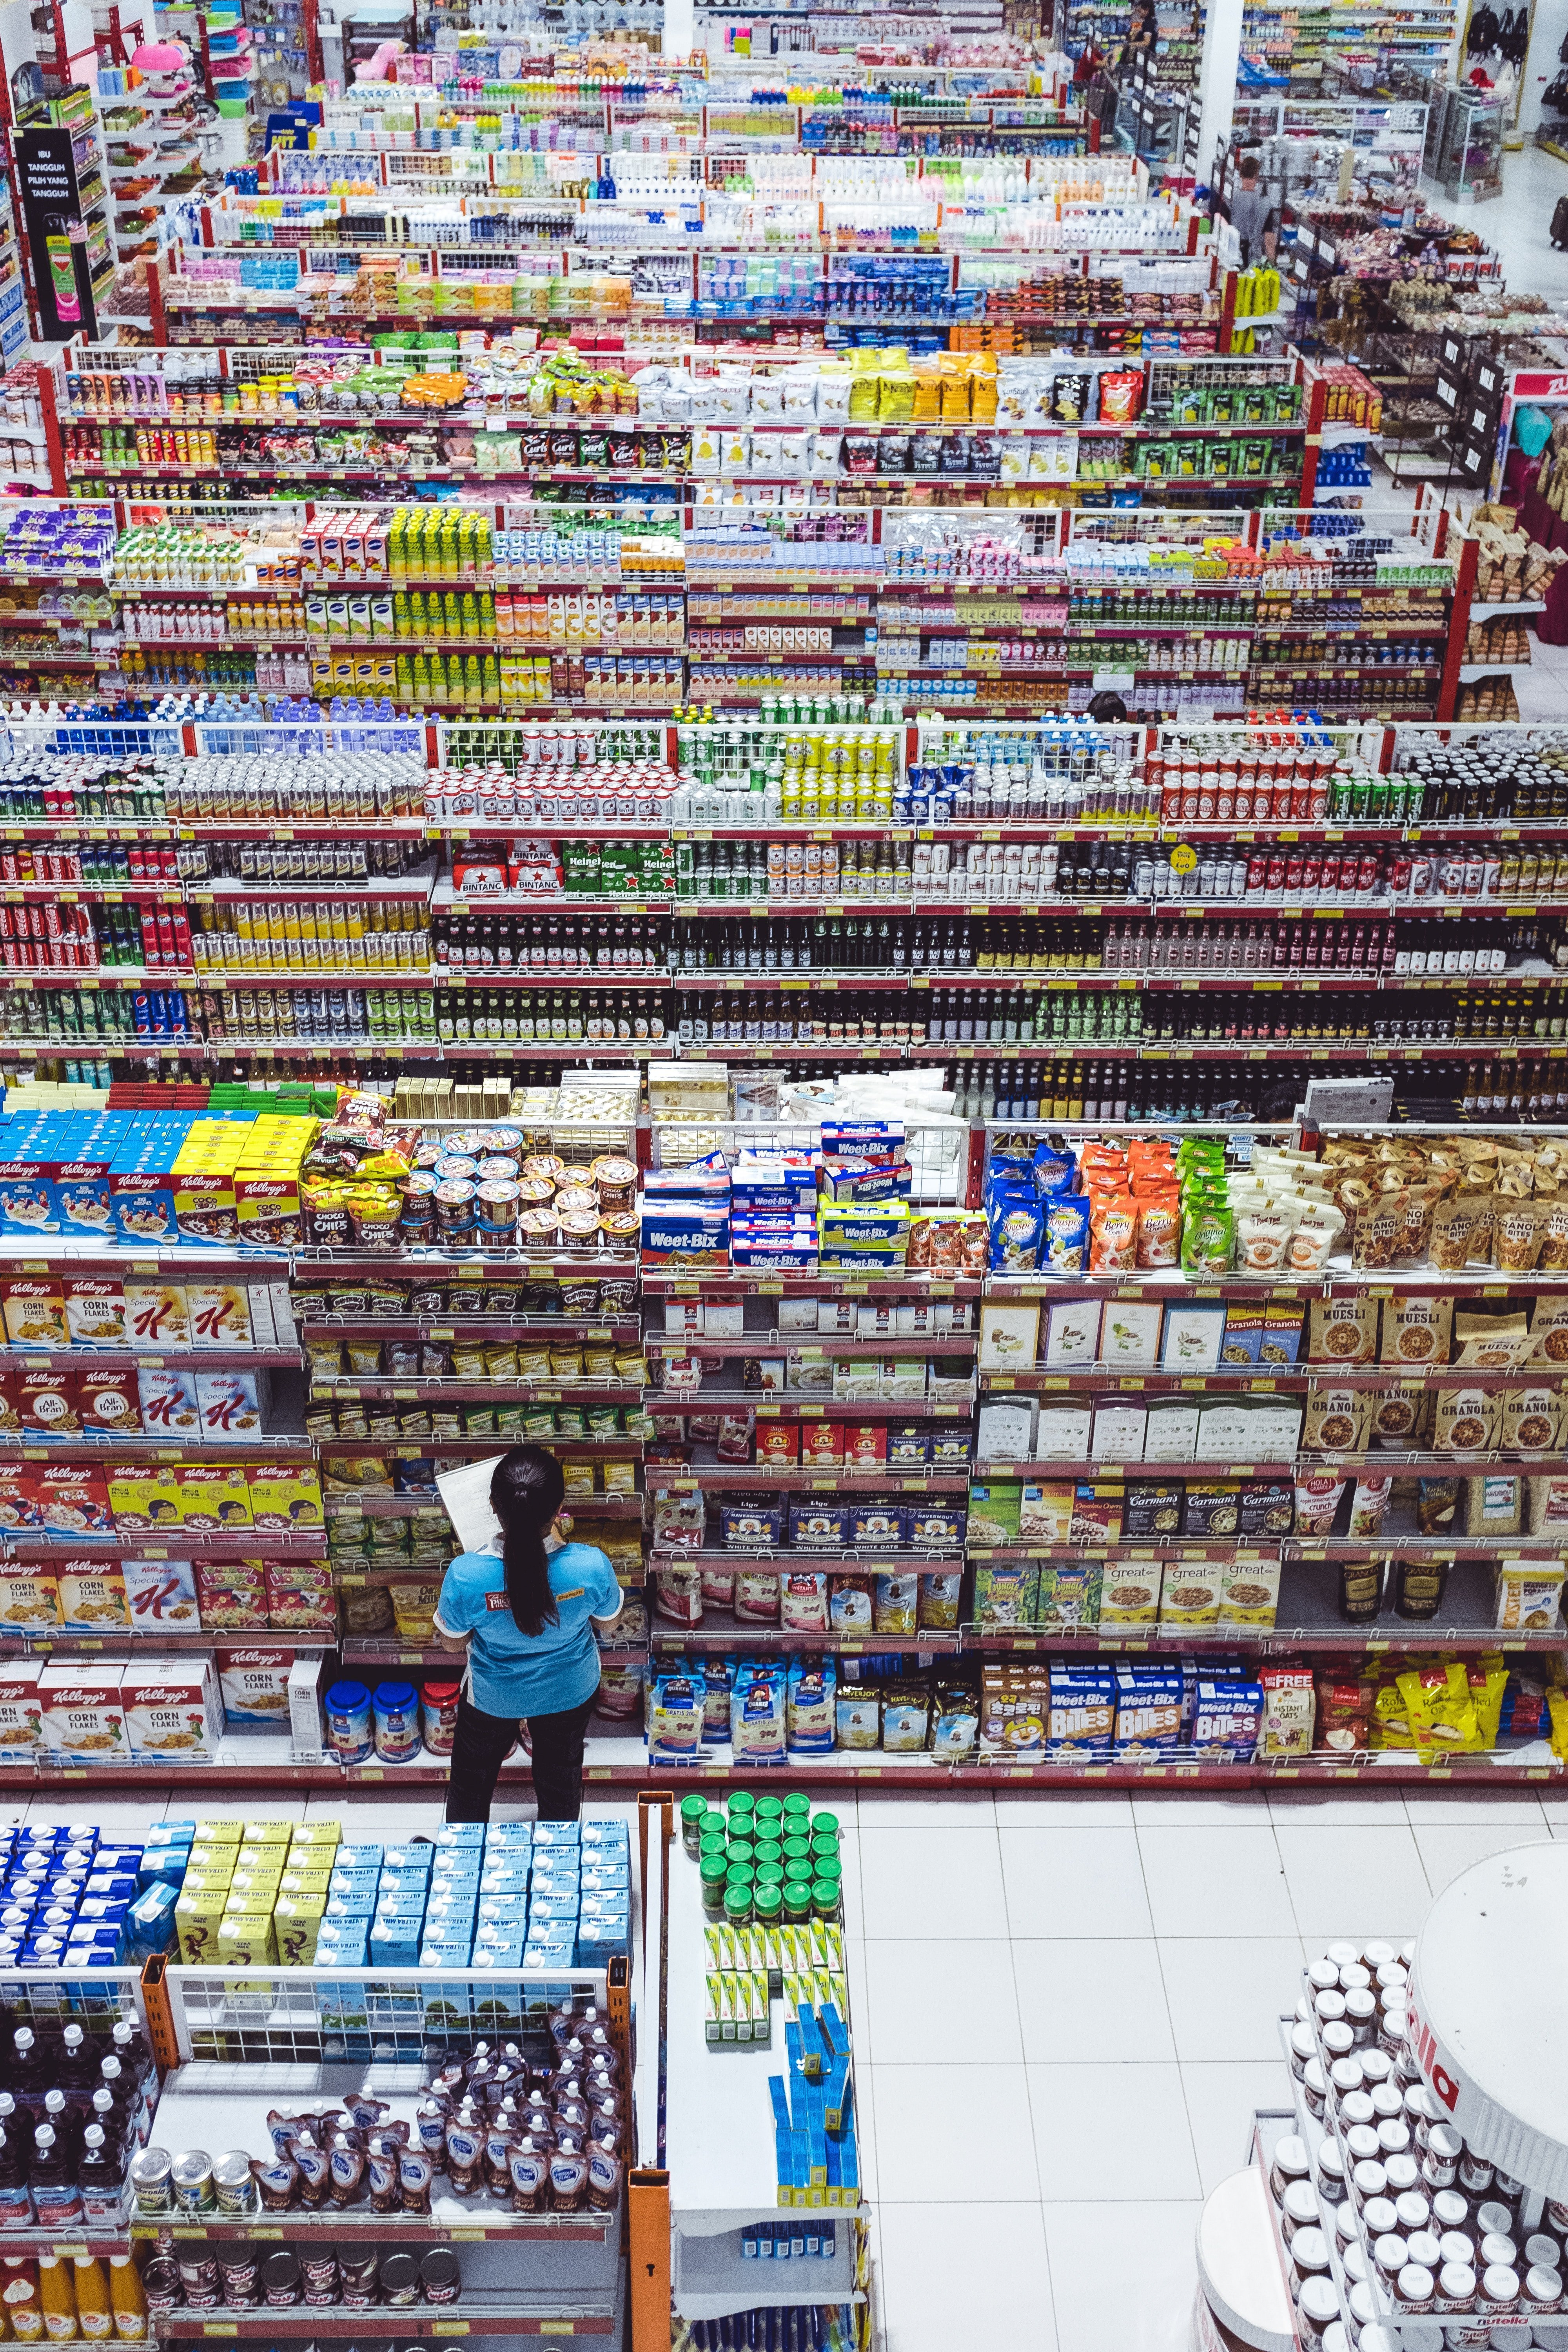 A manager checking the isles of a store | Source: Unsplash.com